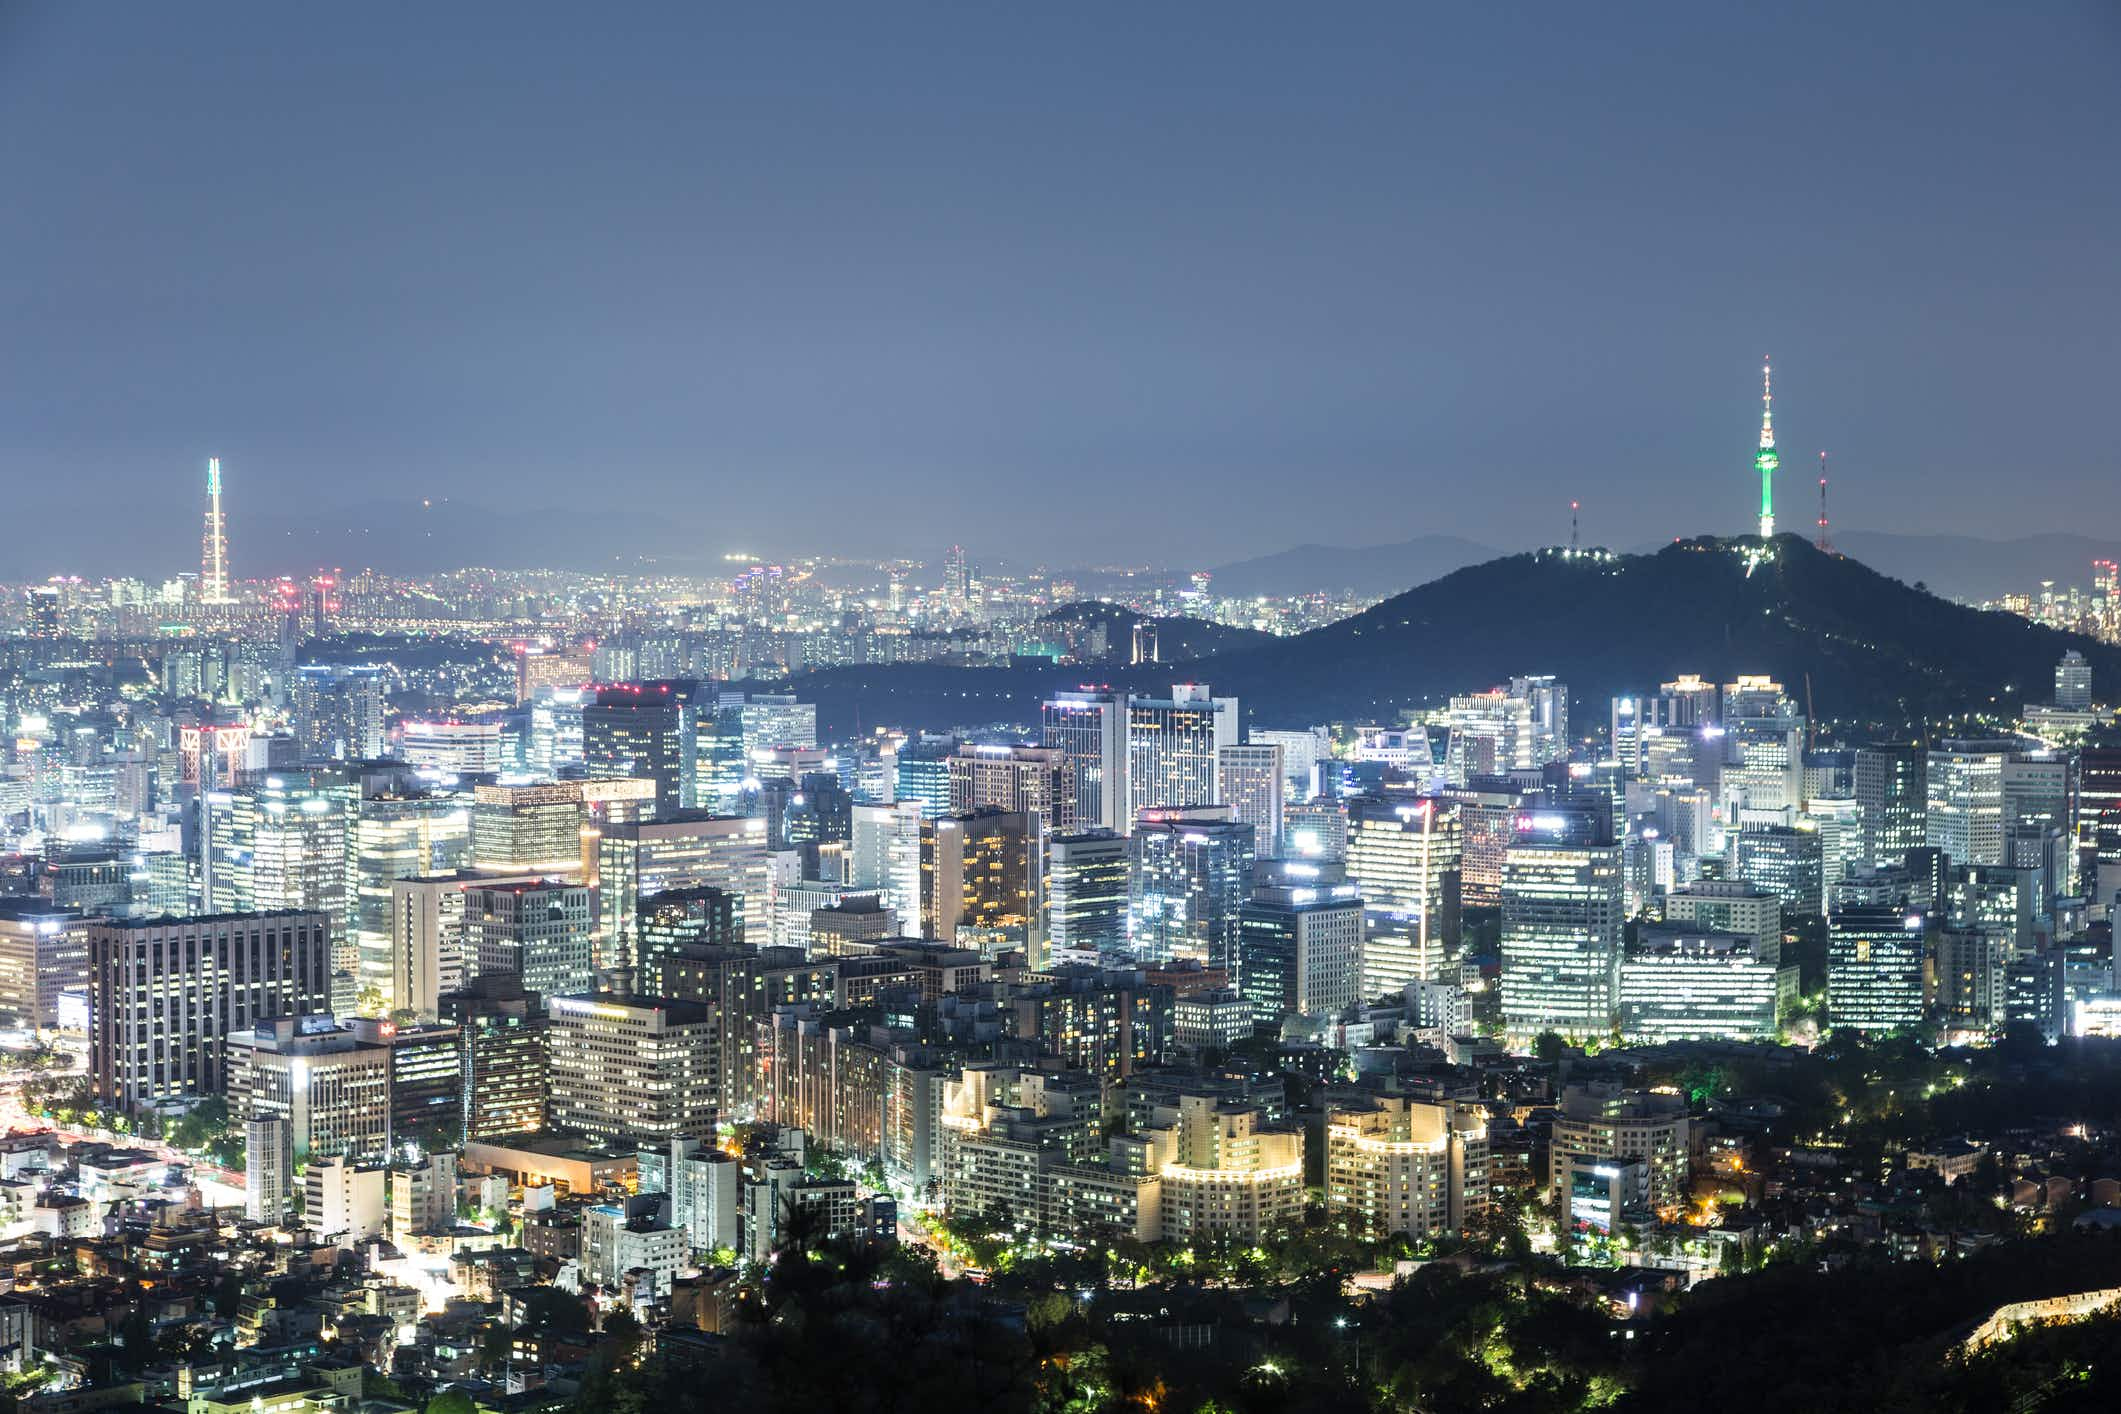 Seoul compensates for bad air by providing free transportation on heavily-polluted days